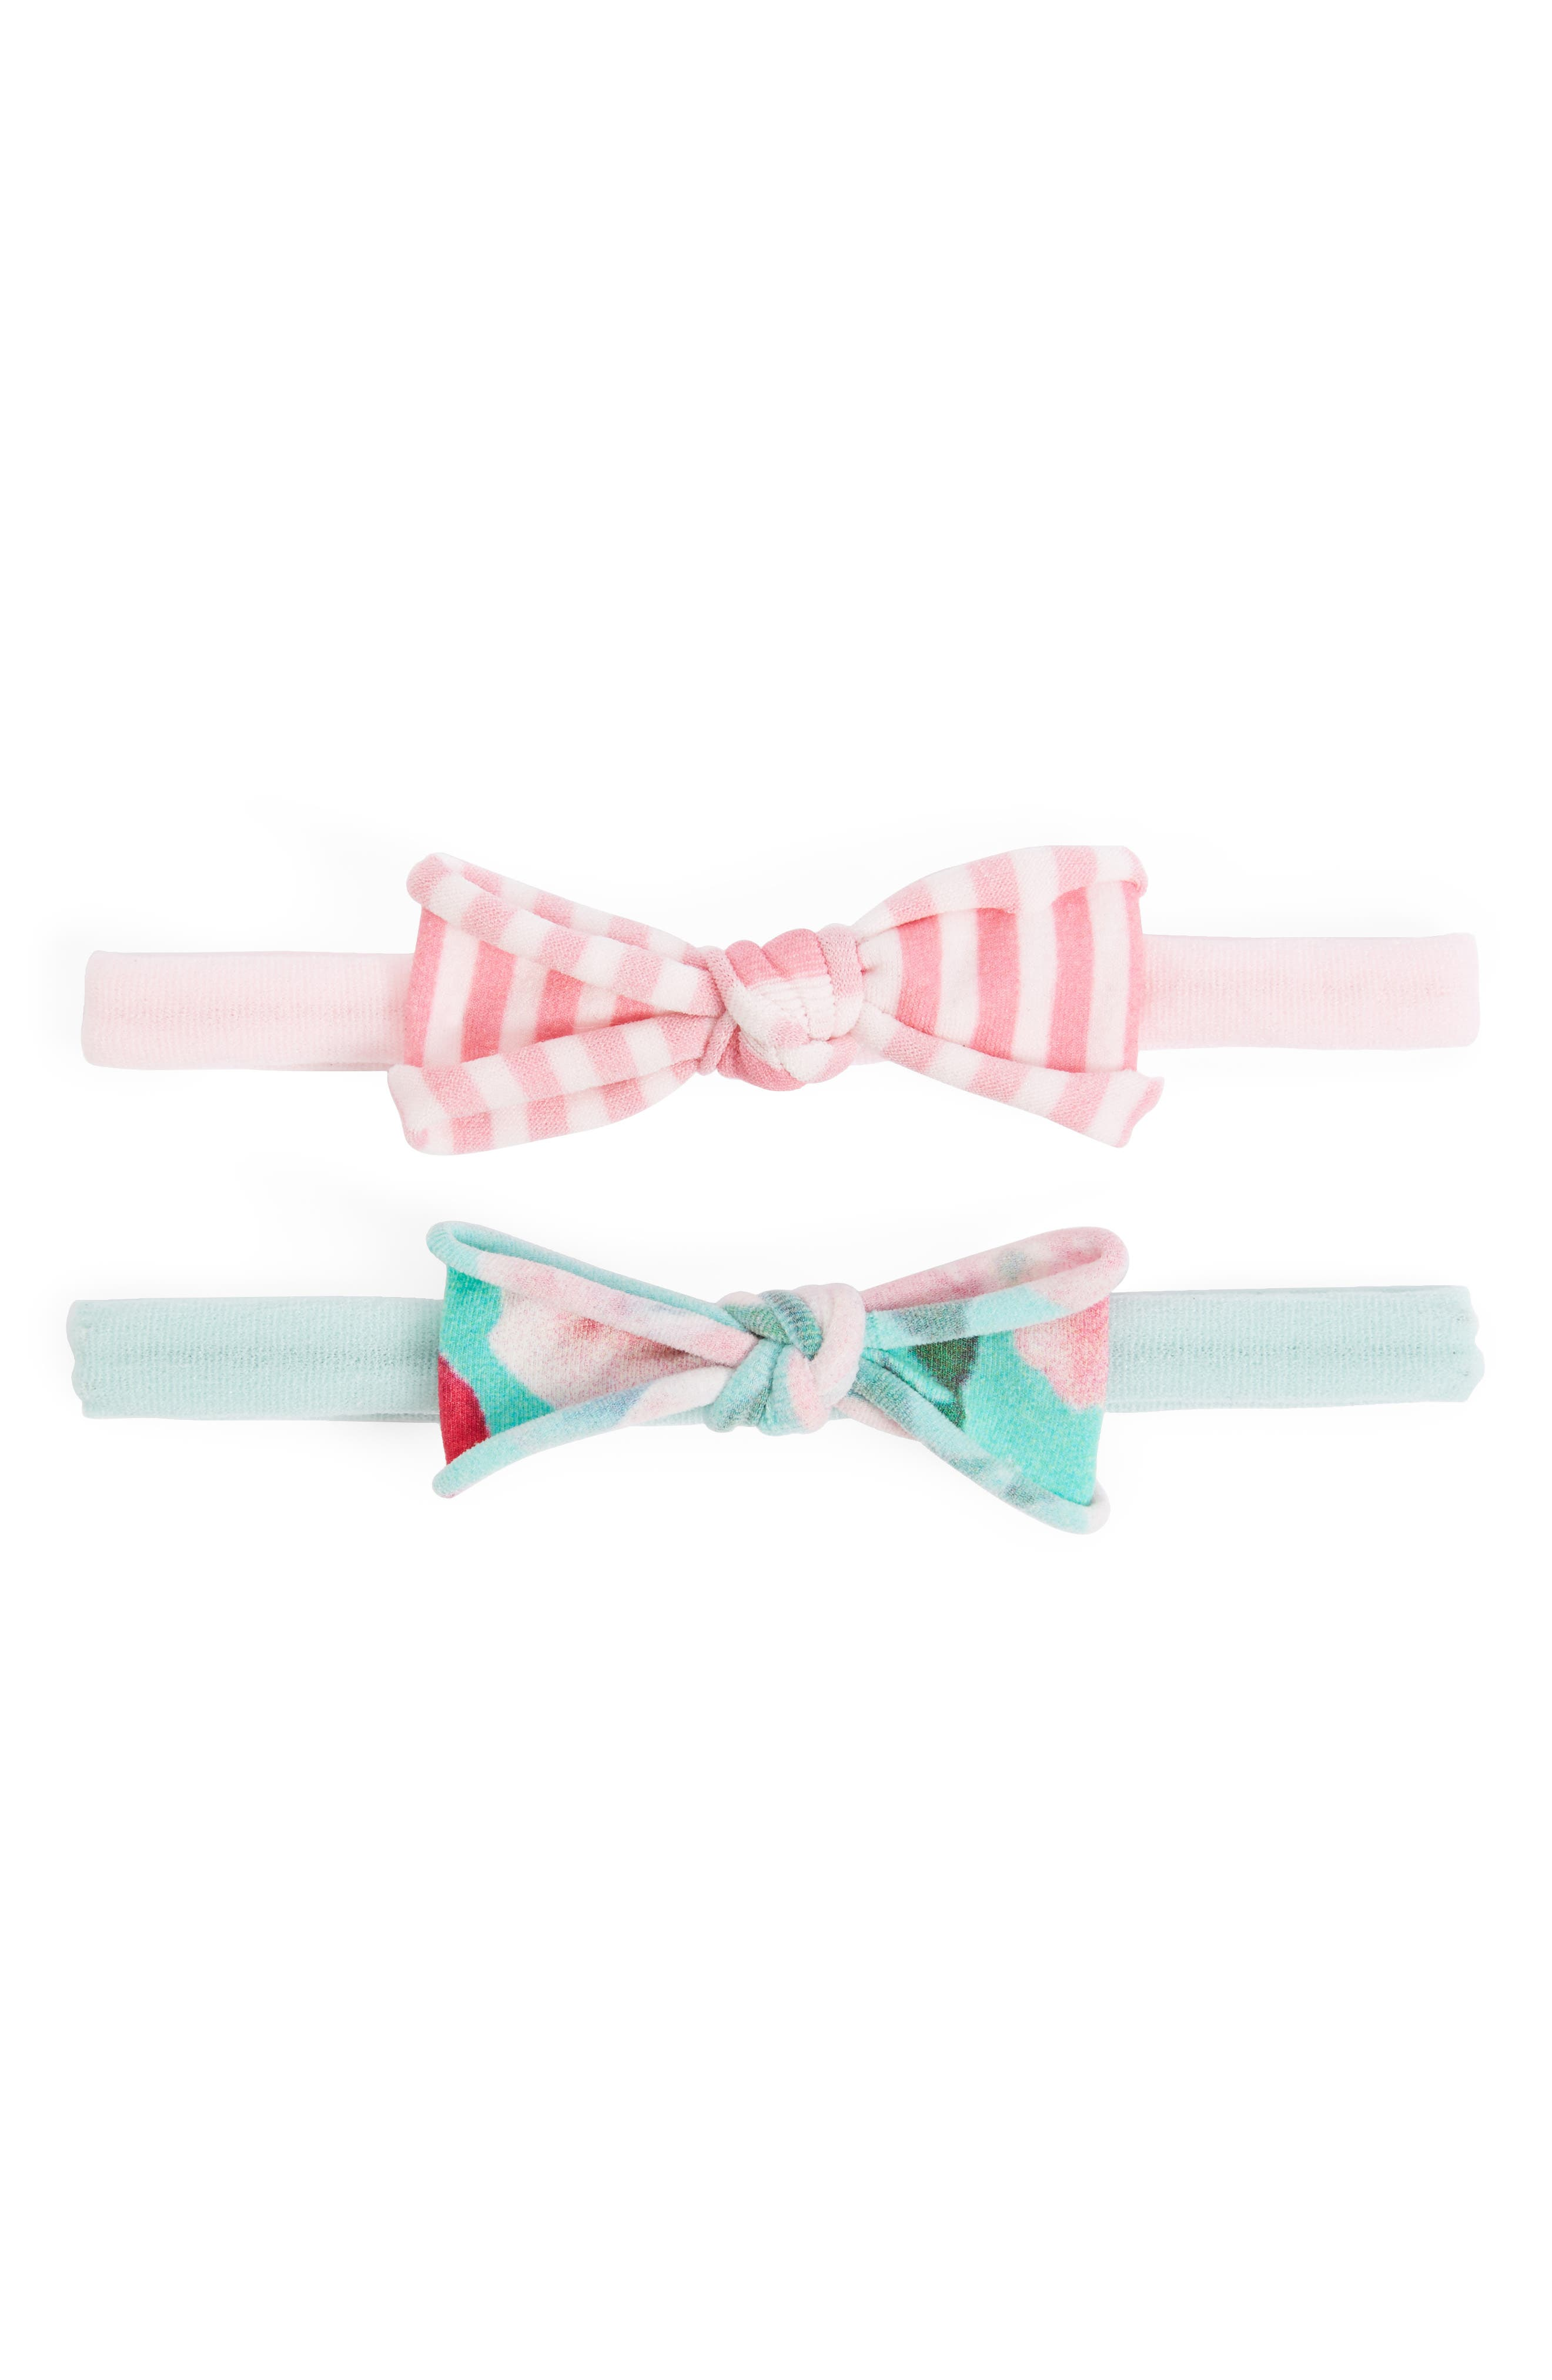 Set of 2 Bow Headbands,                             Main thumbnail 1, color,                             Mint Floral/ Pink Stripe